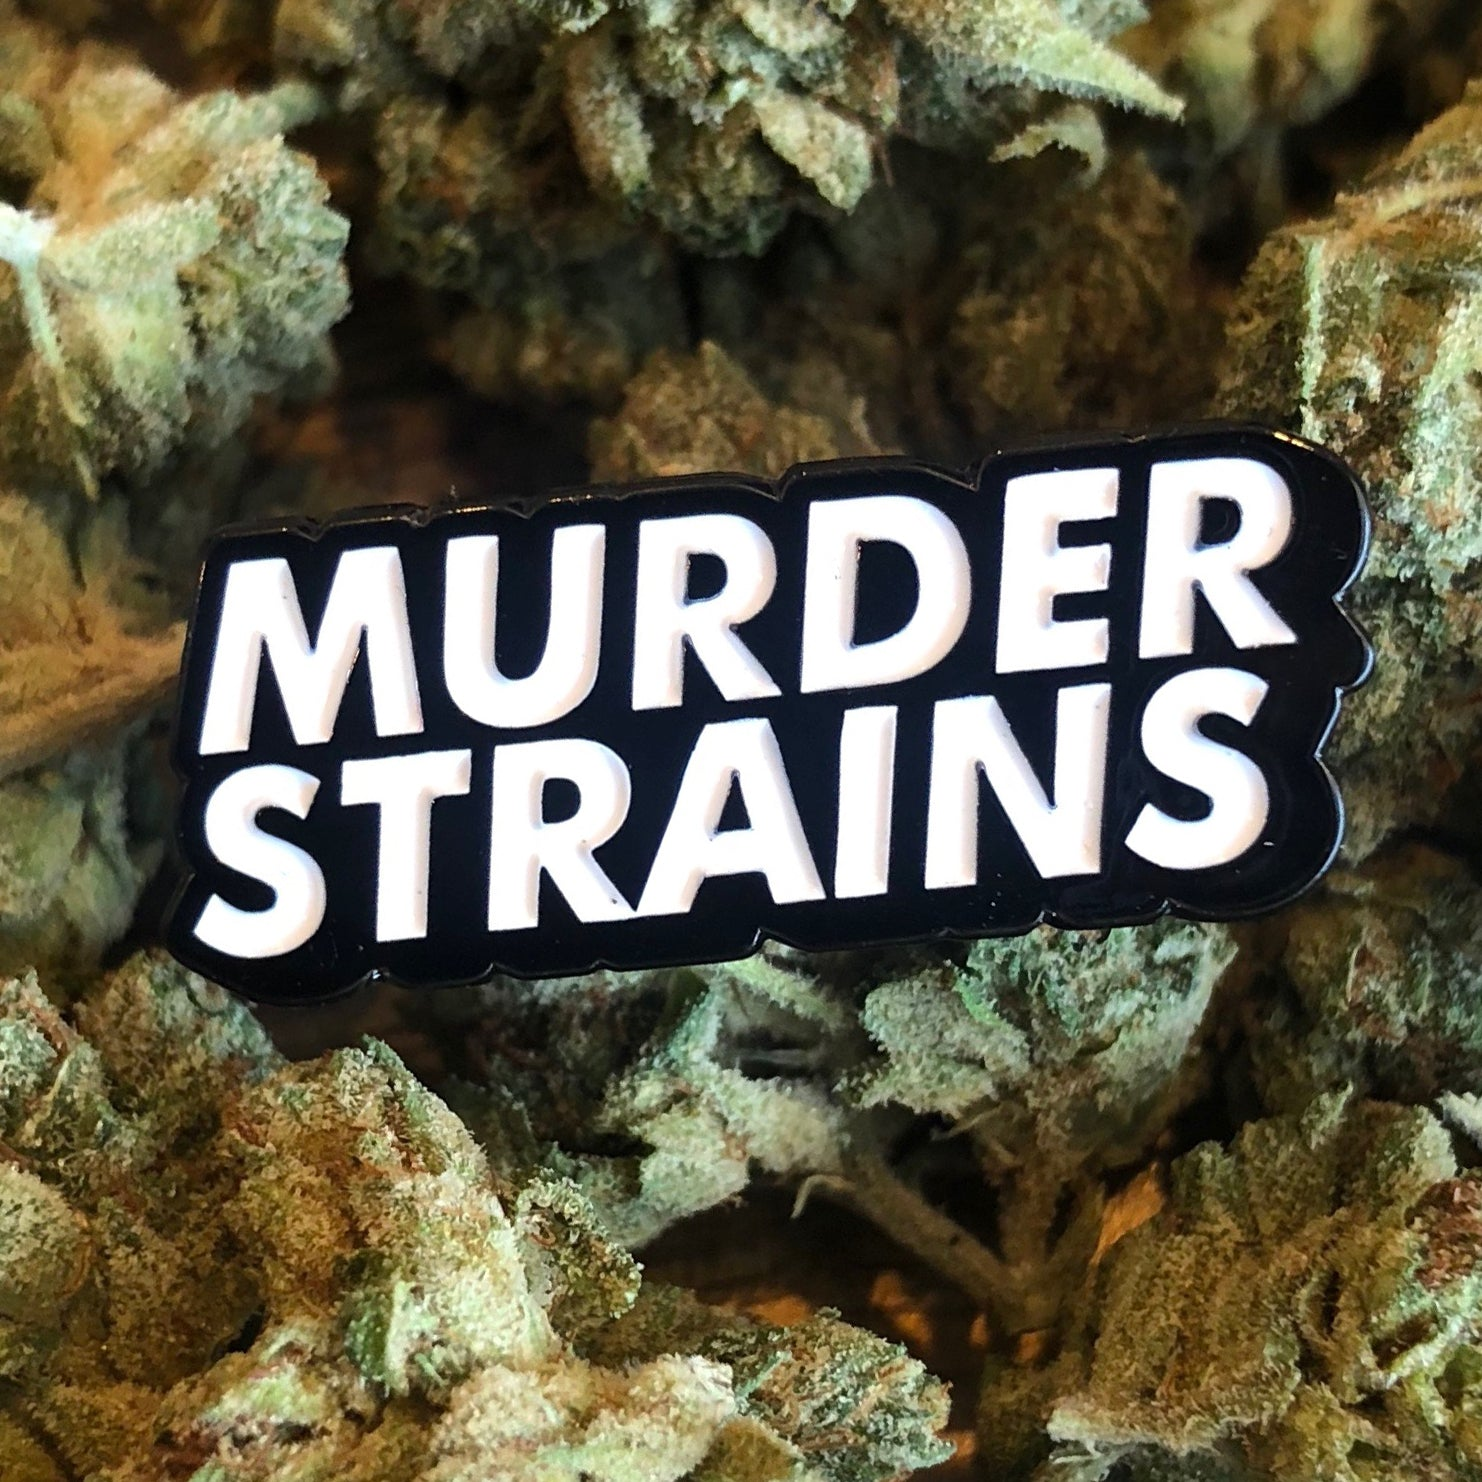 MURDER STRAINS LAPEL PIN / LIMITED EDITION